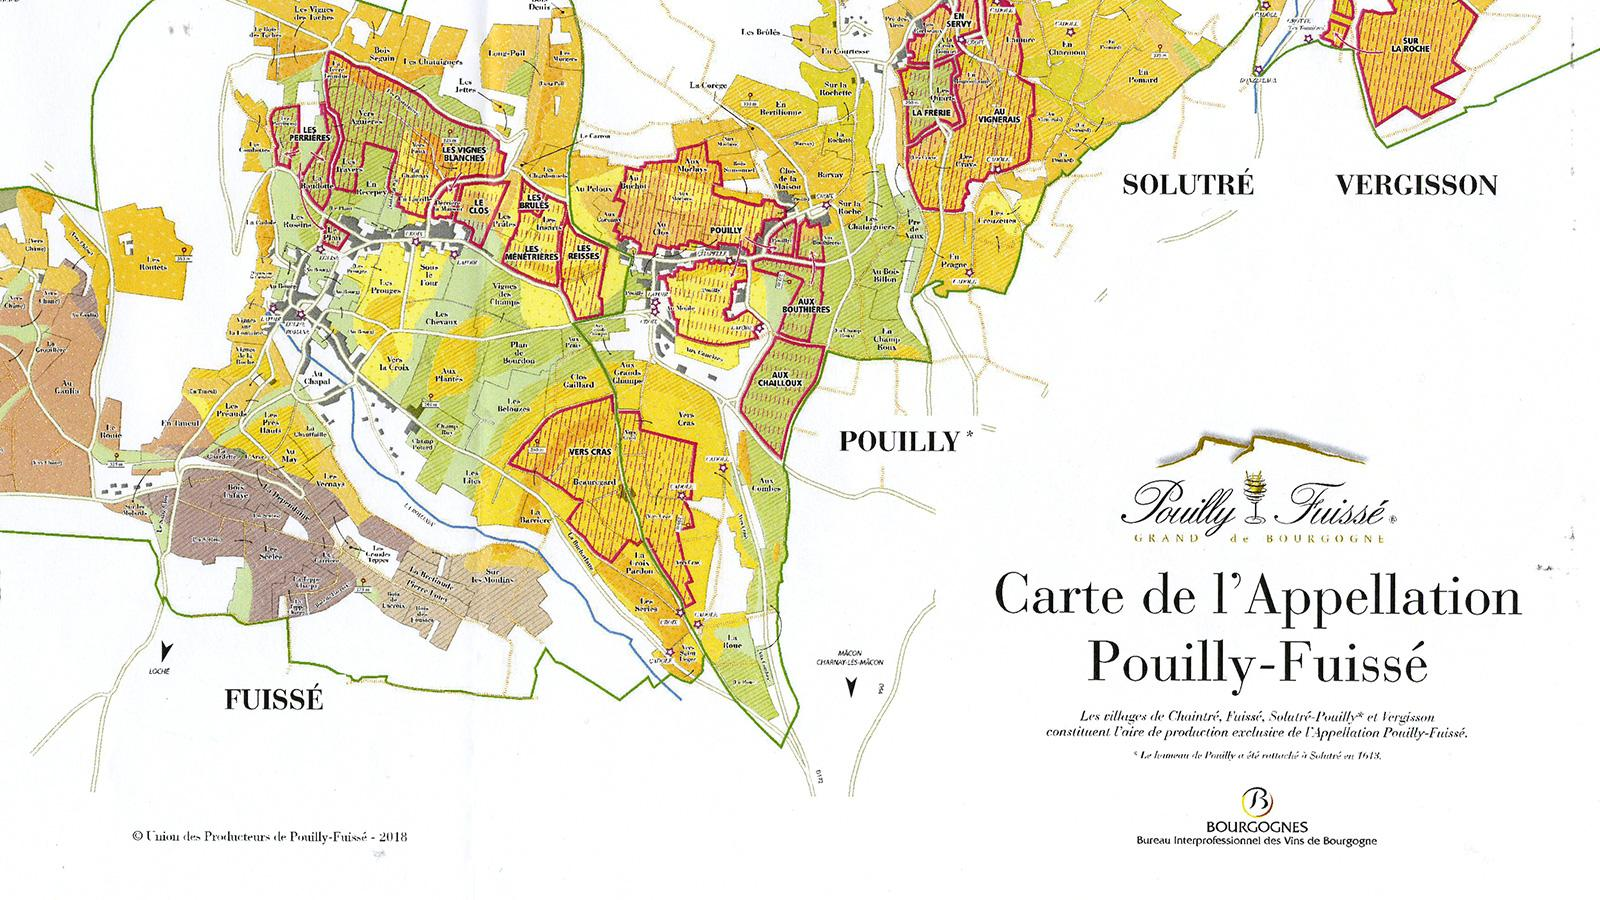 Pouilly-Fuissé will soon have 22 premiers crus.